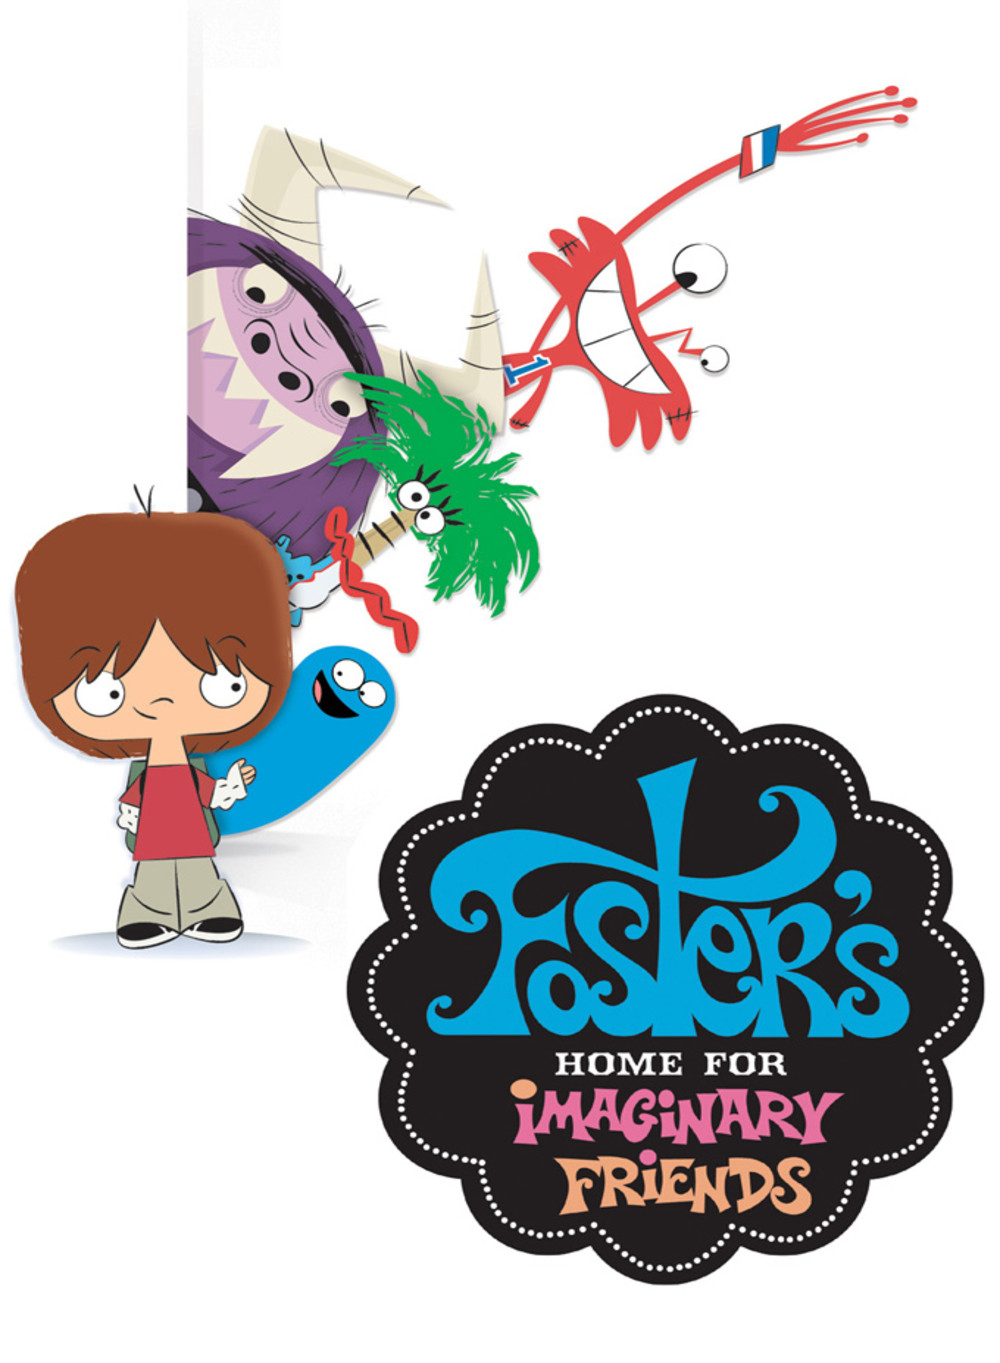 Fosters Home For Imaginary dawson's reviews: foster's home for imaginary friends